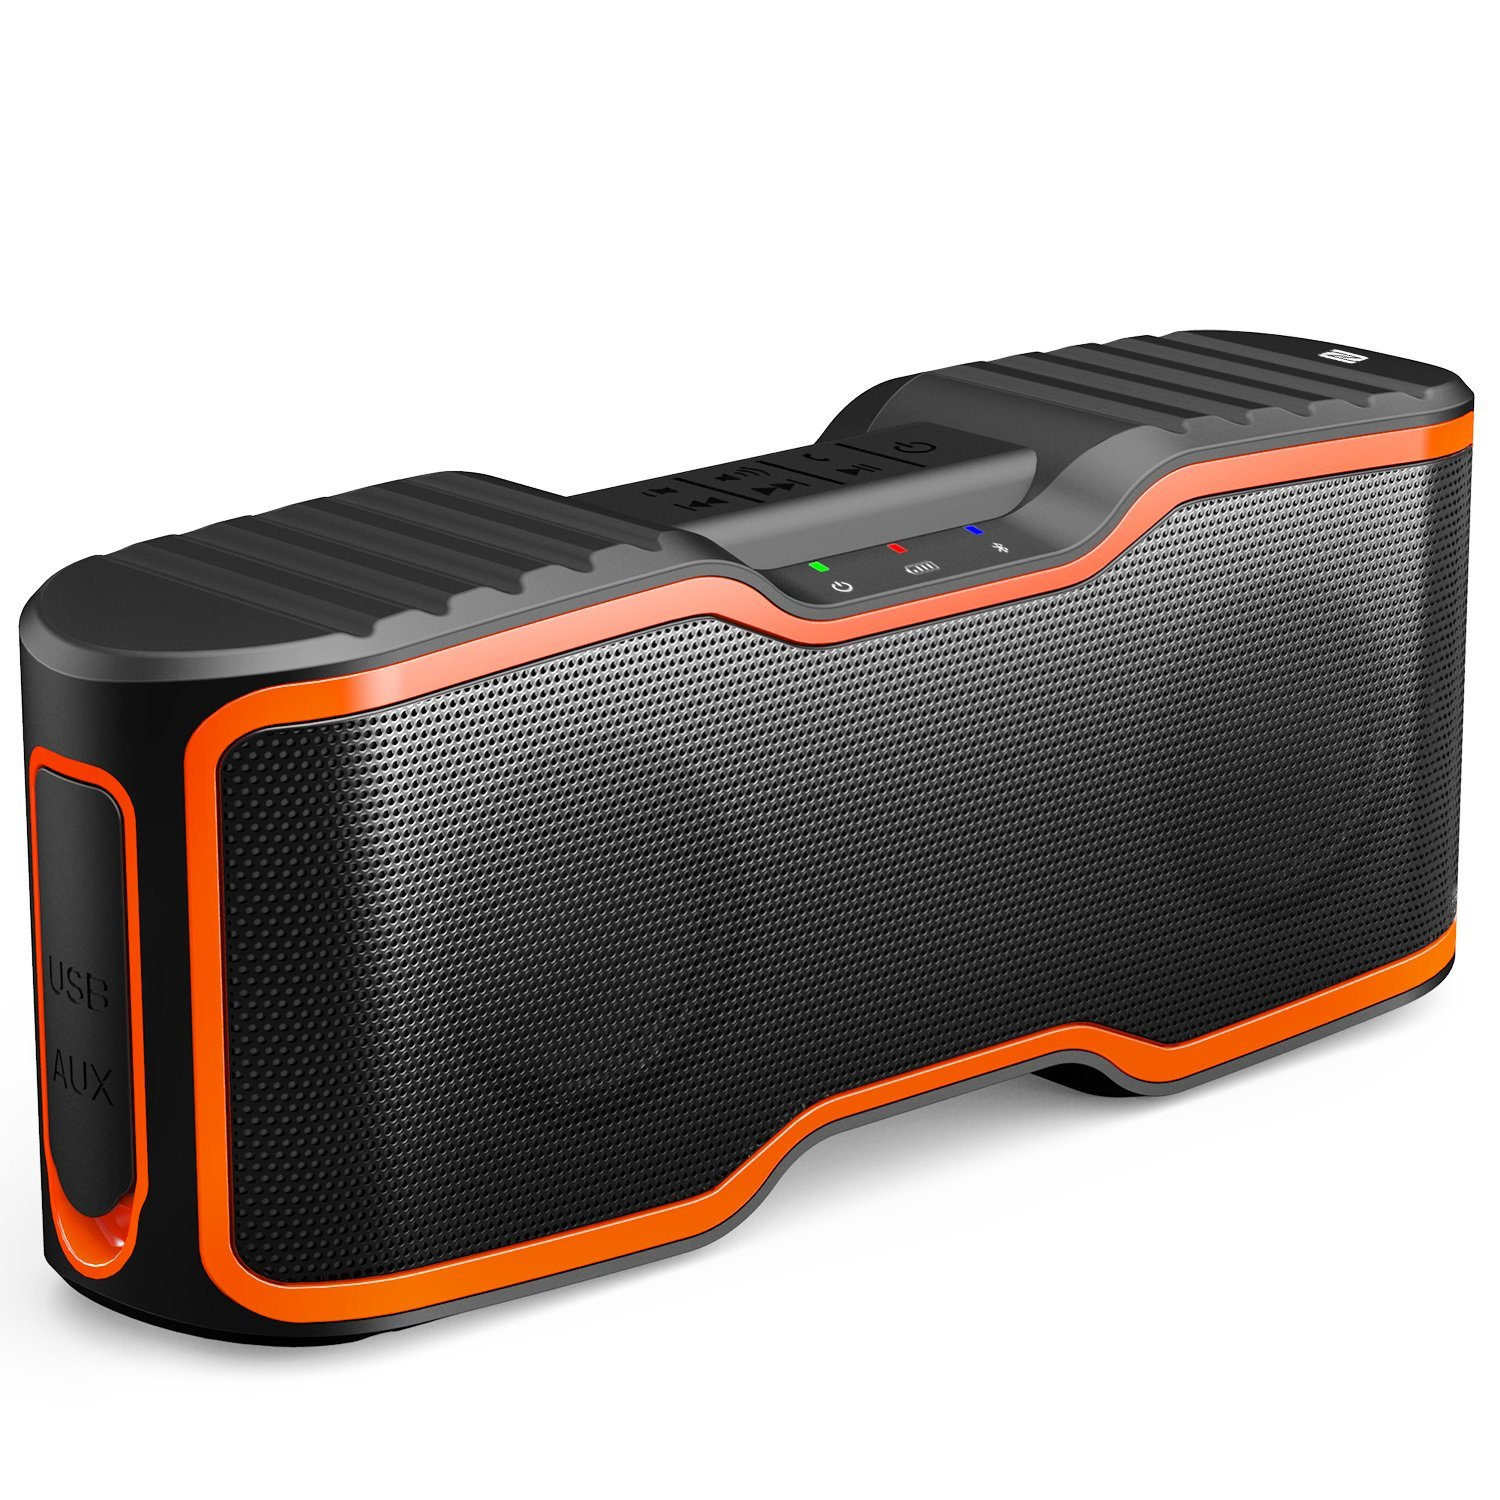 AOMAIS Sport II Portable Wireless Bluetooth Speakers 4.0 with Waterproof IPX7,20W Bass Sound